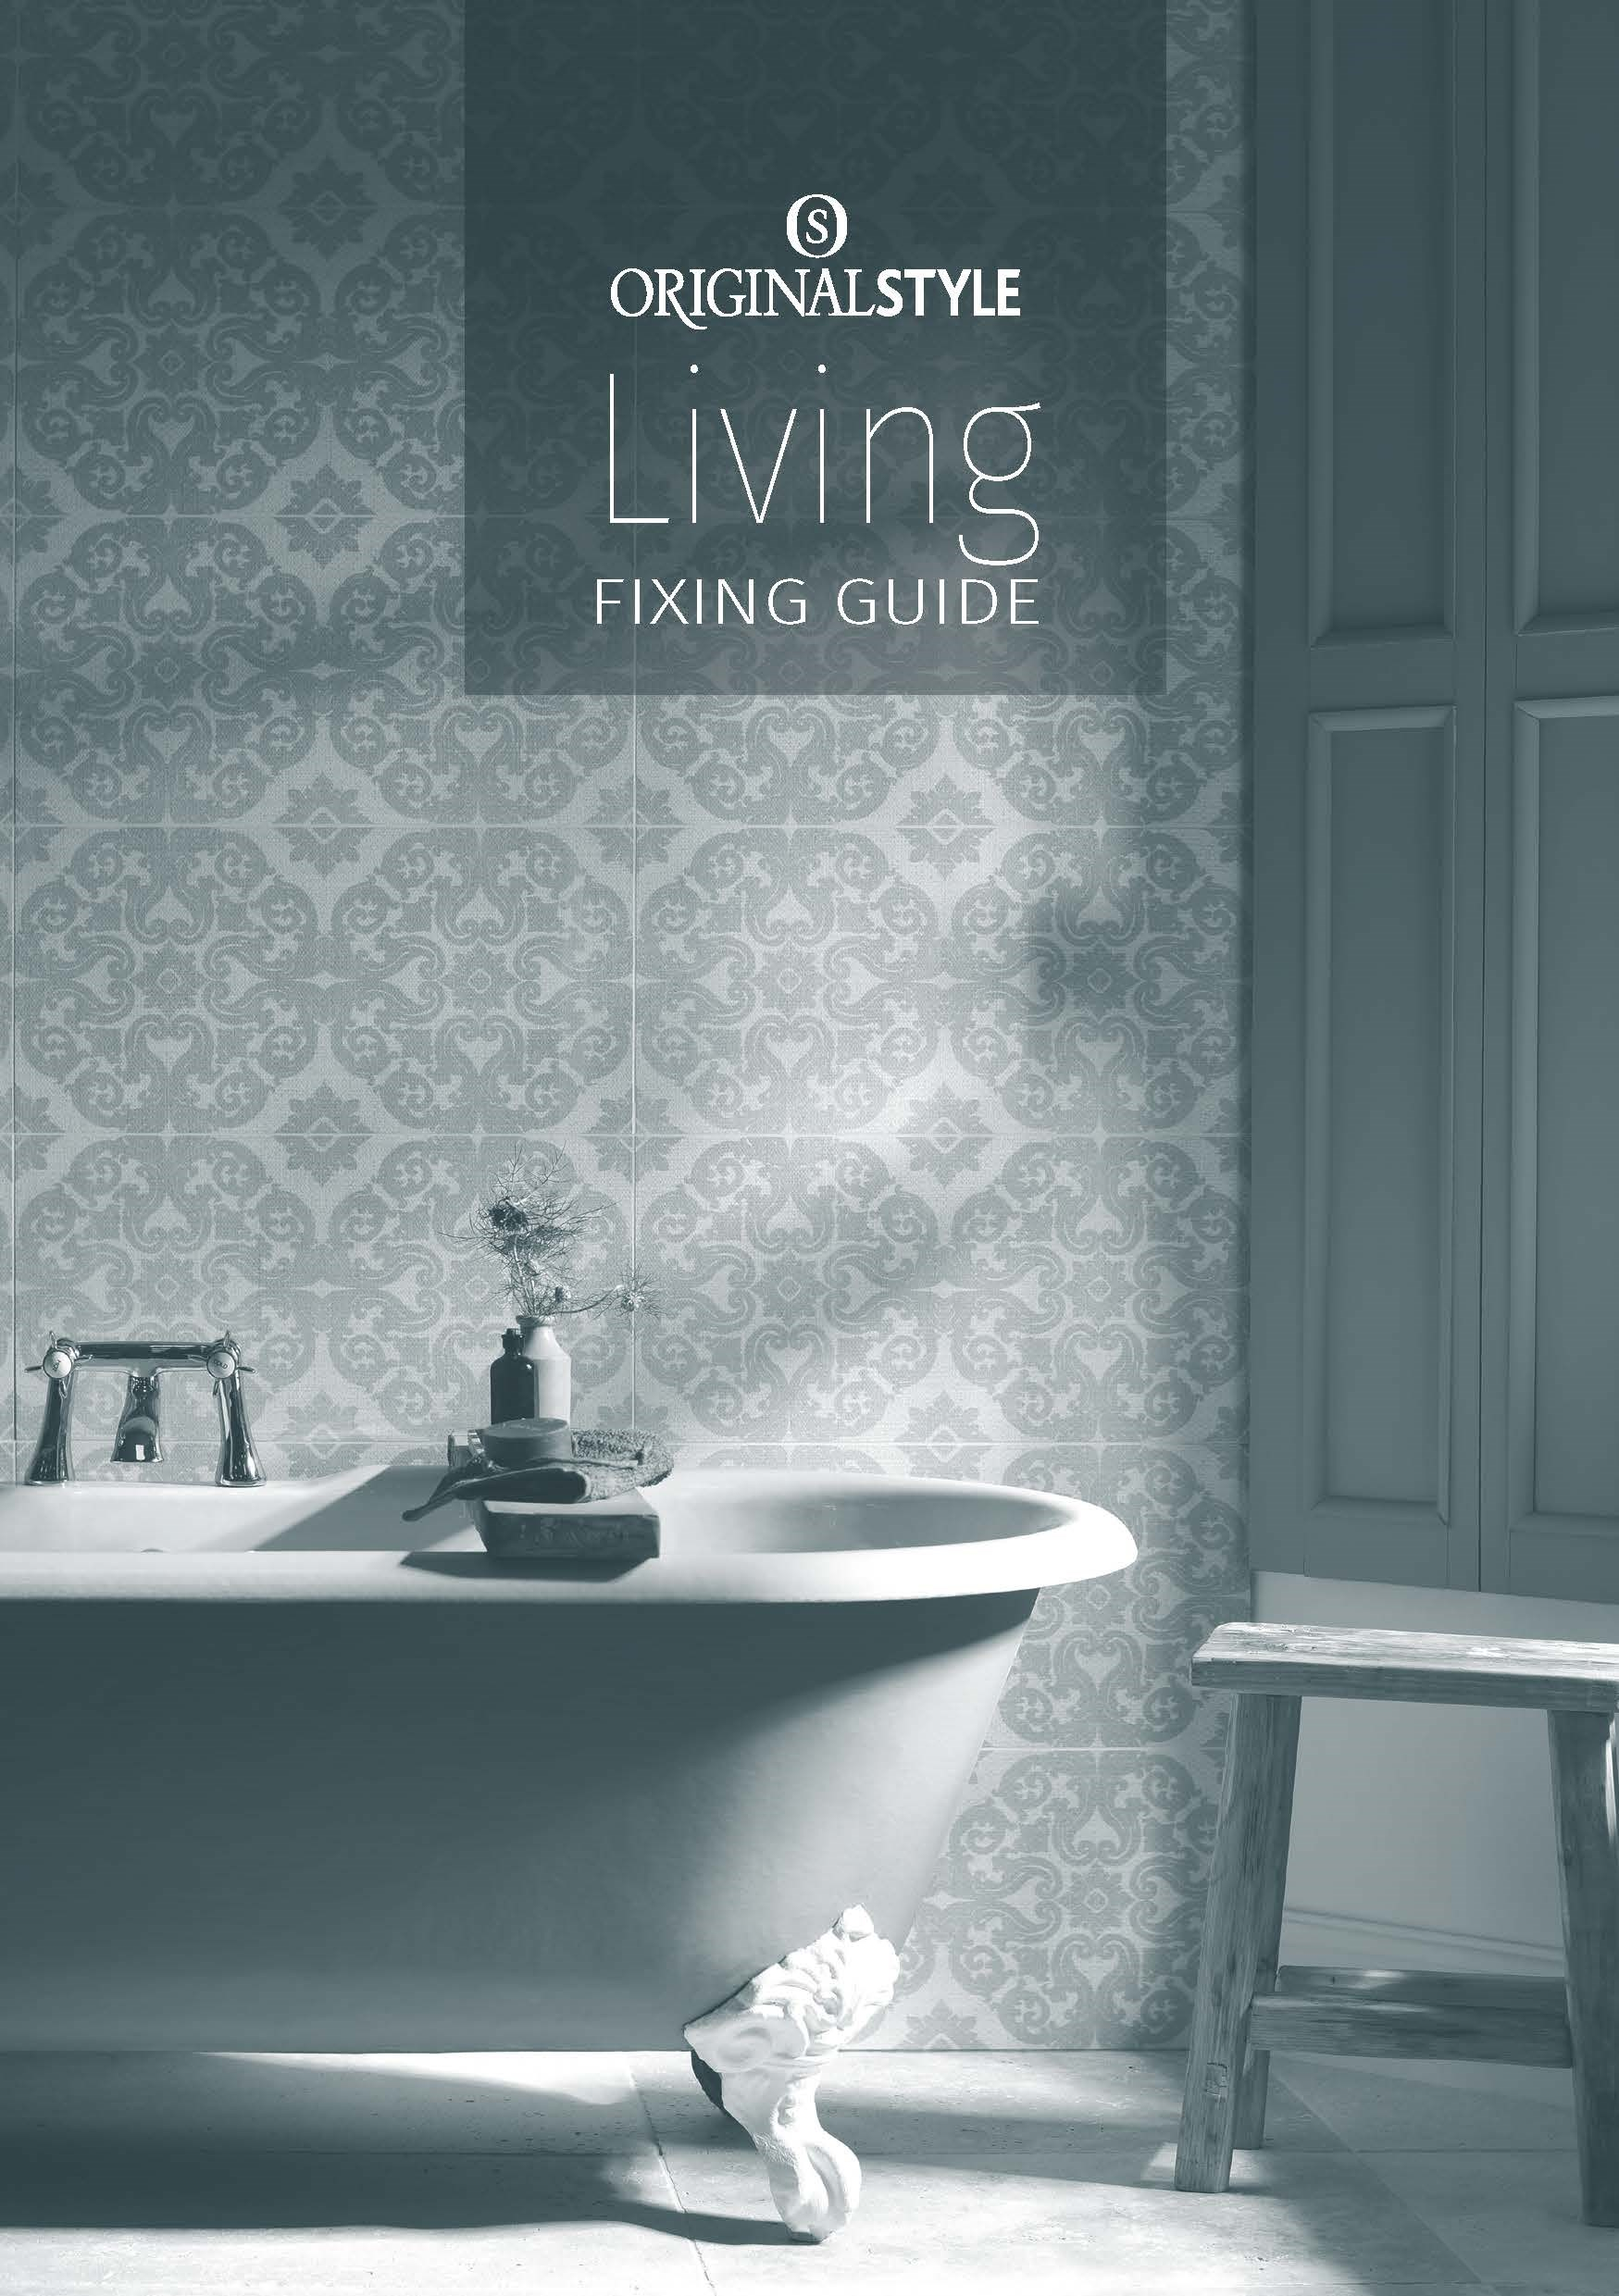 Living Fixing Guide preview image